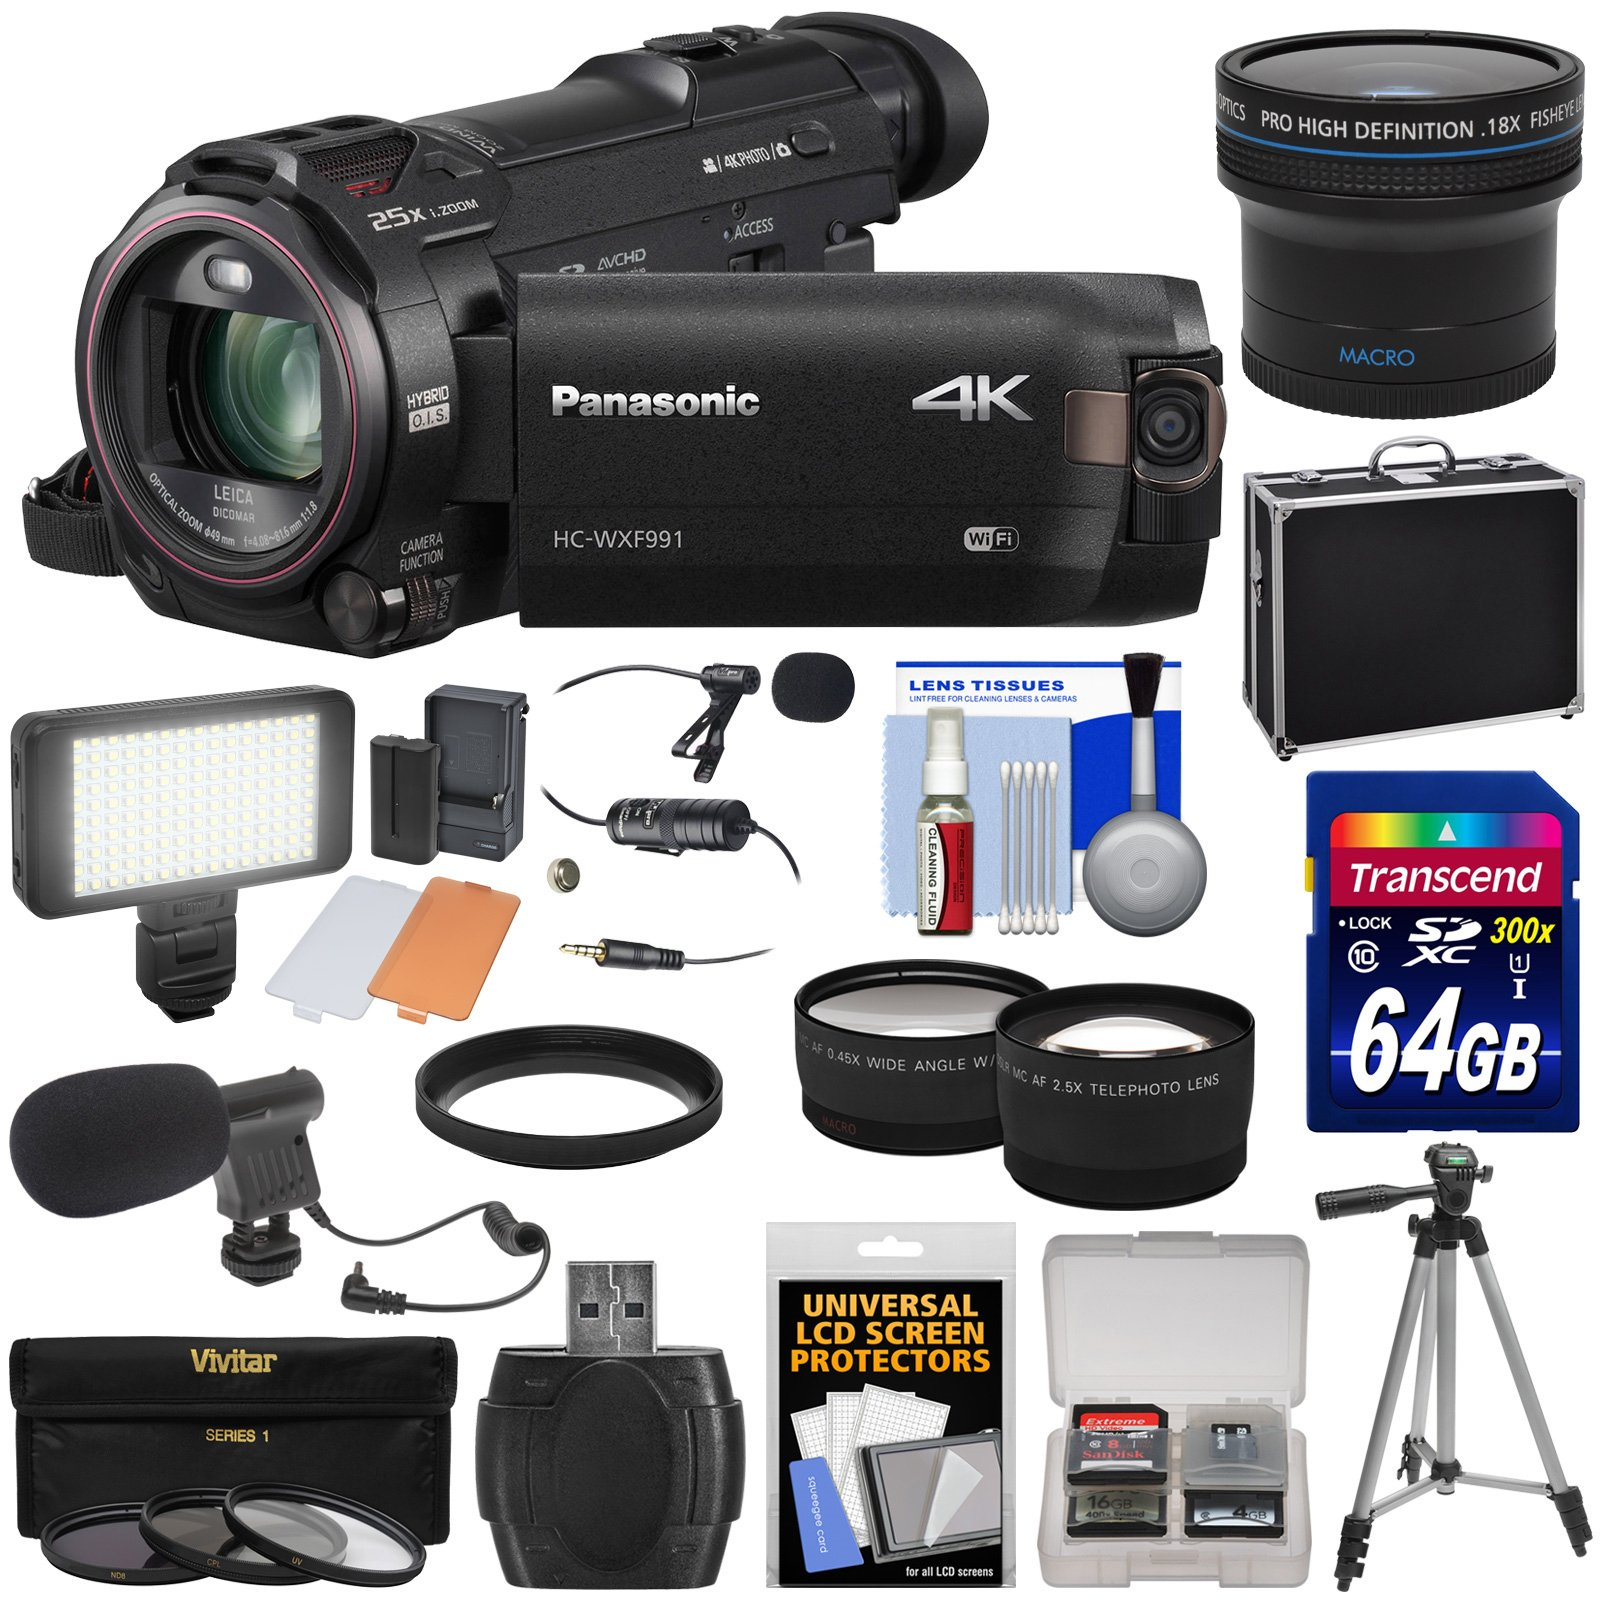 Panasonic HC-WXF991 Wi-Fi 4K Ultra HD Video Camera Camcorder with 64GB + Case + Tripod + LED Light + 2 Mics + Filters + Fisheye, Tele/Wide Lenses Kit by Panasonic